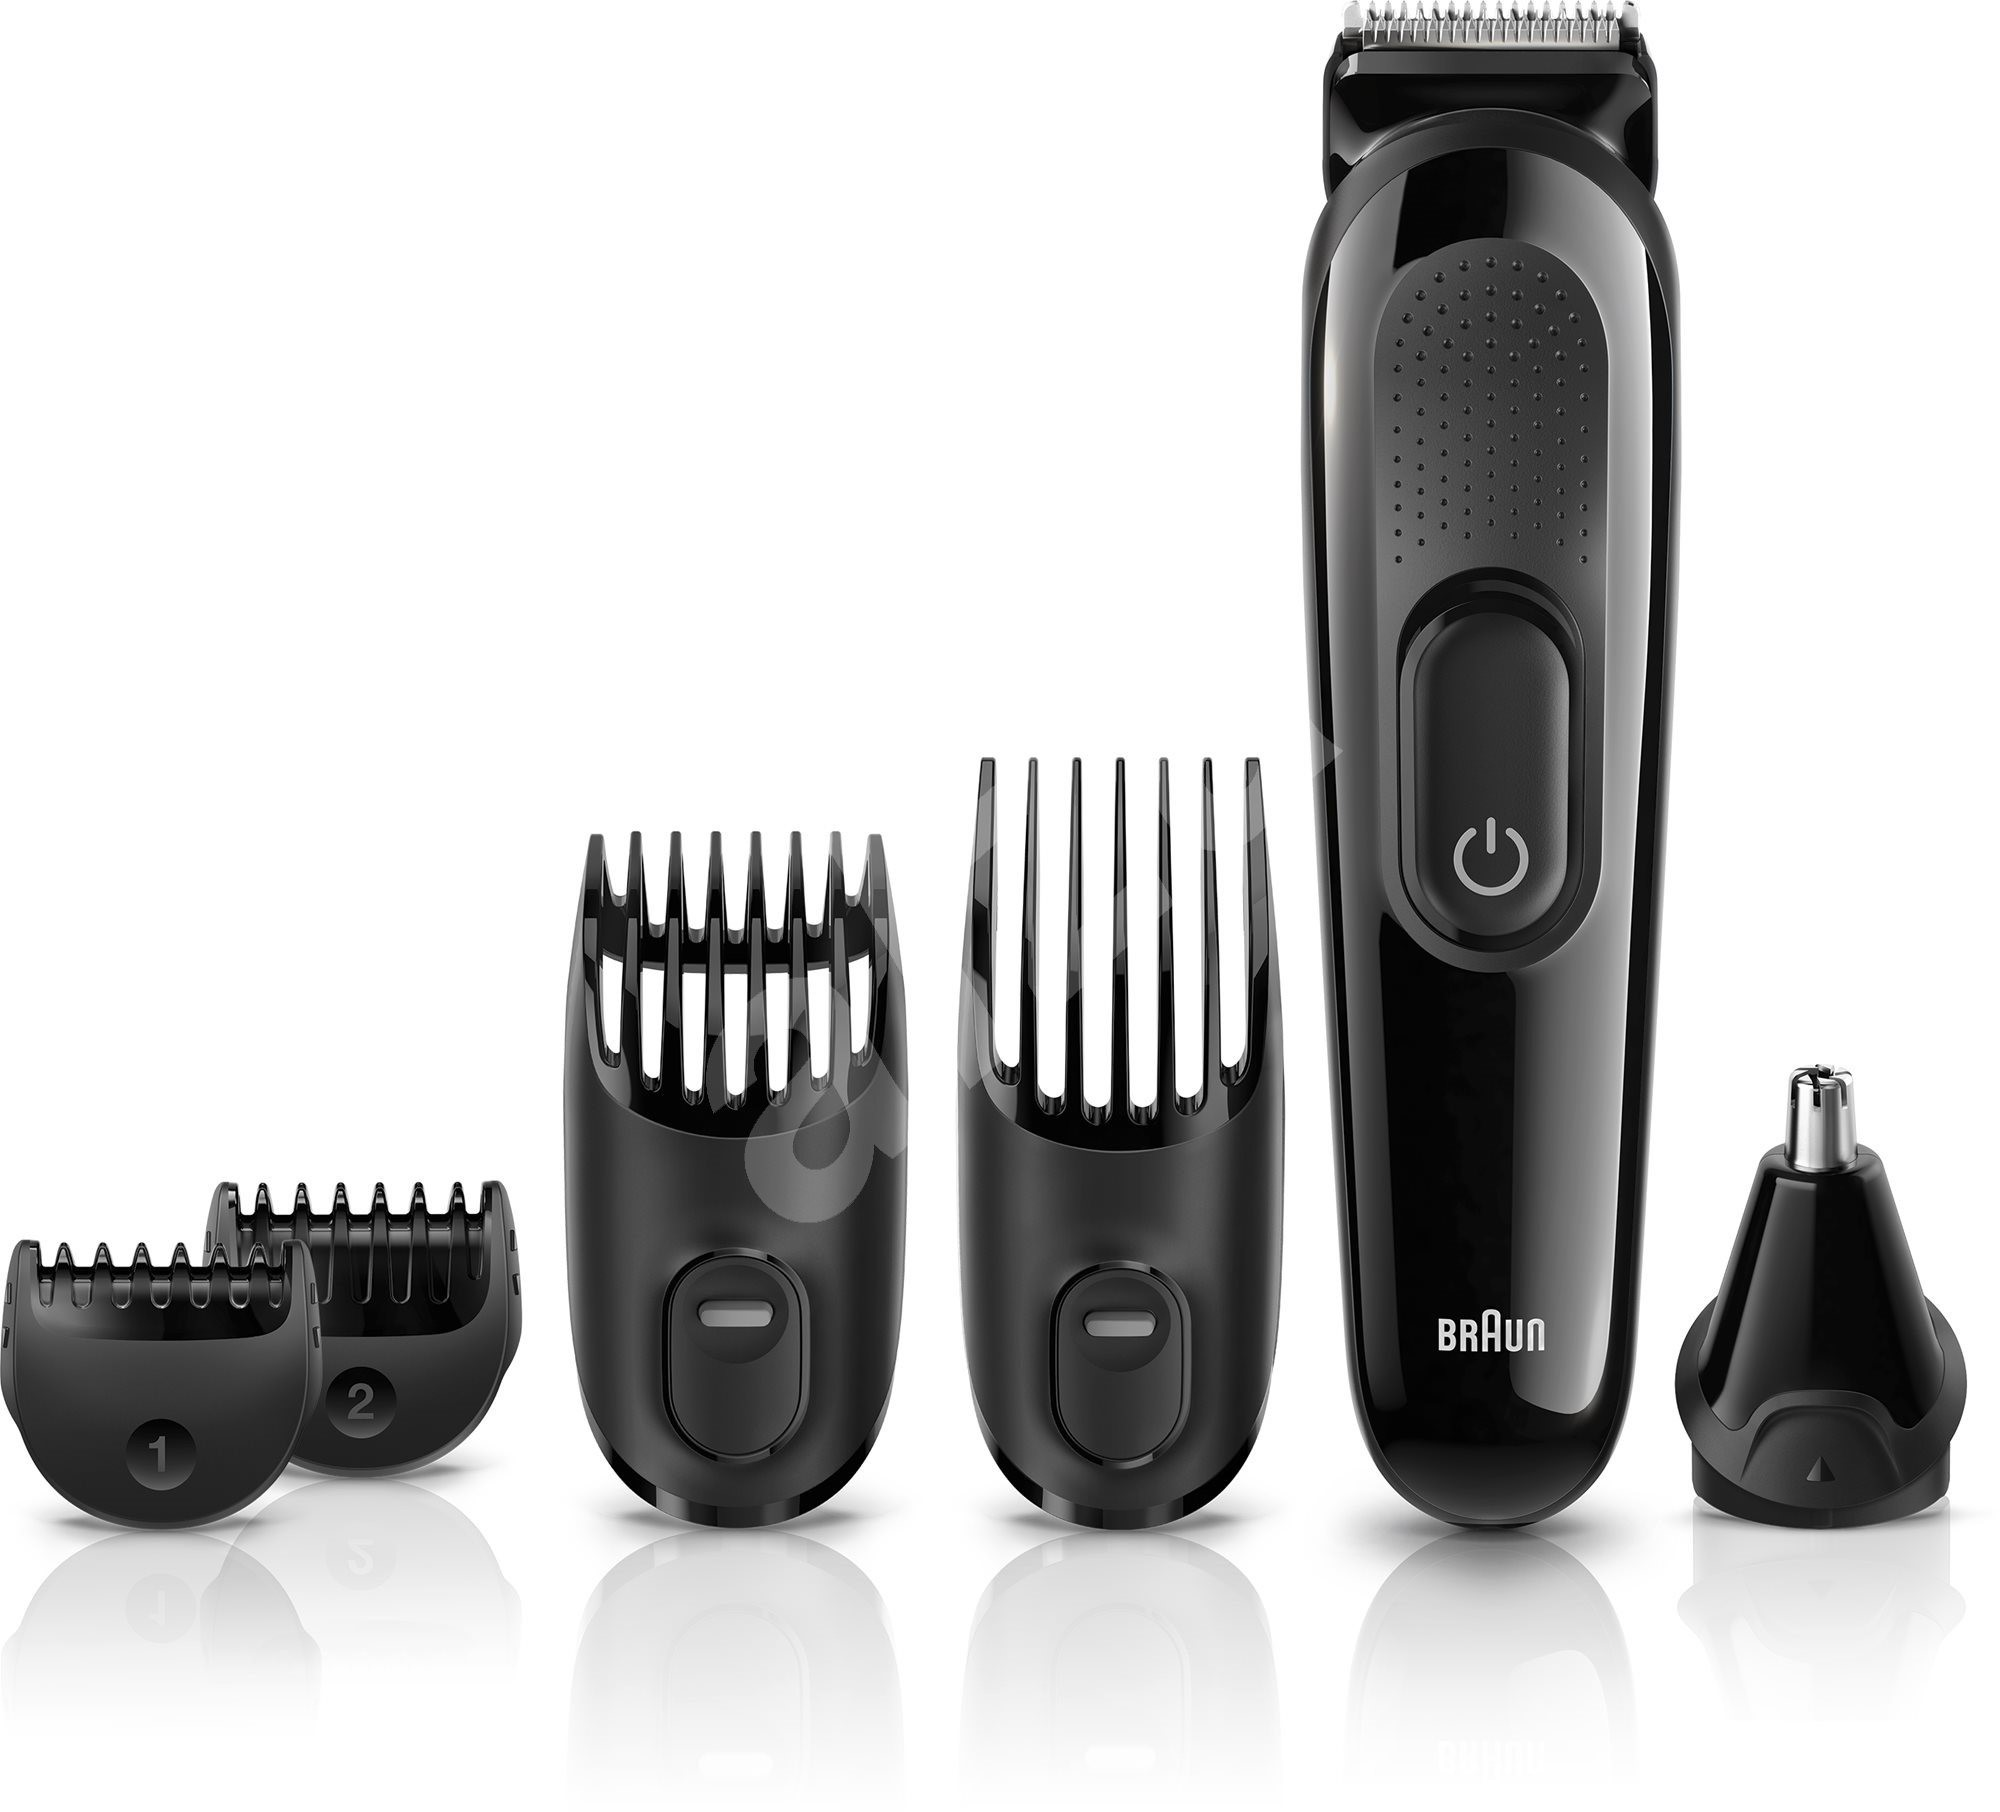 braun mgk3020 multi grooming 6 in 1 beard and hair trimming kit hair and beard trimmer. Black Bedroom Furniture Sets. Home Design Ideas